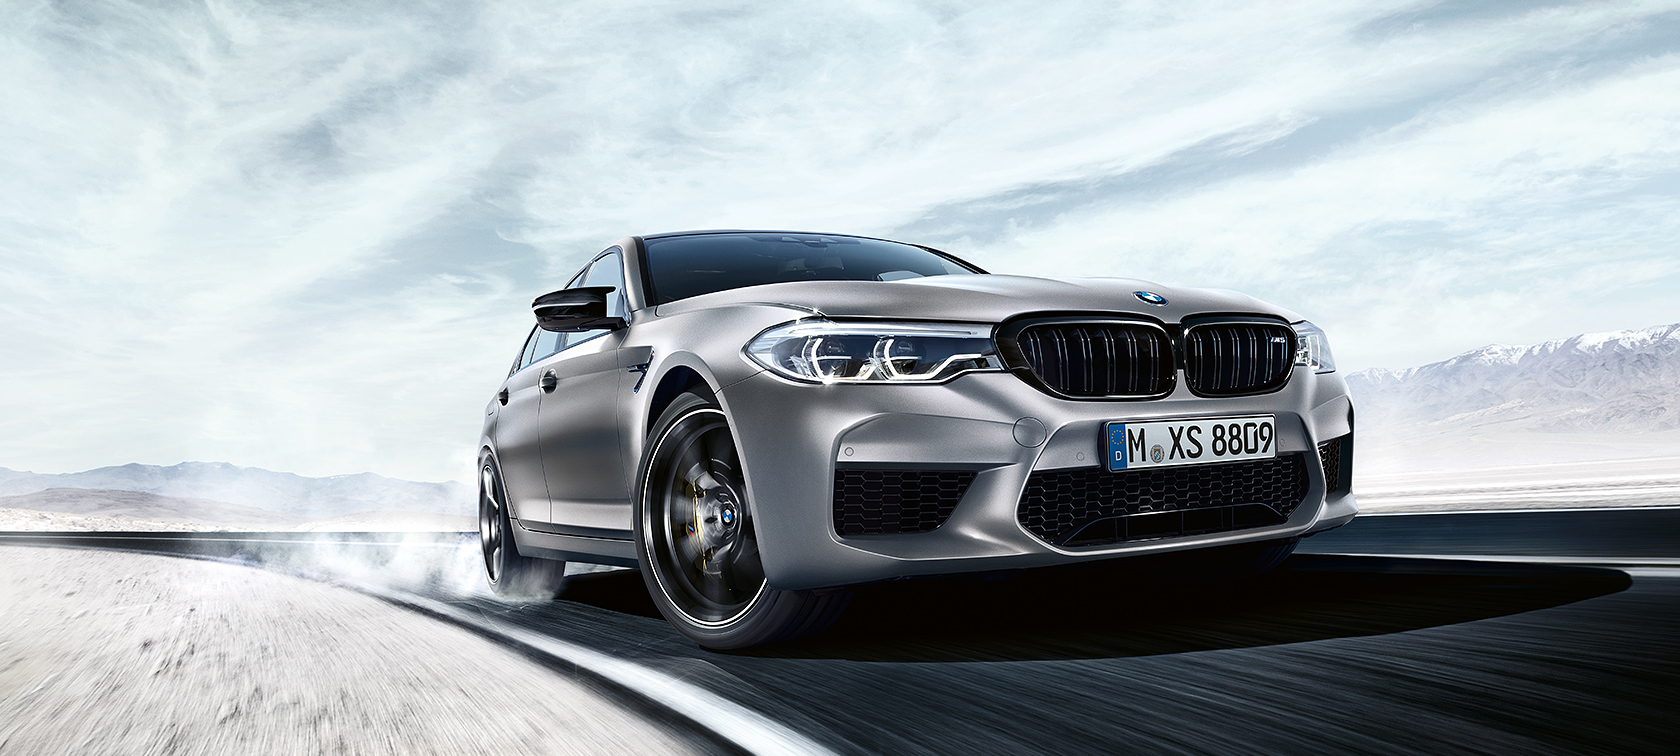 ニューBMW M5 Competition、登場。